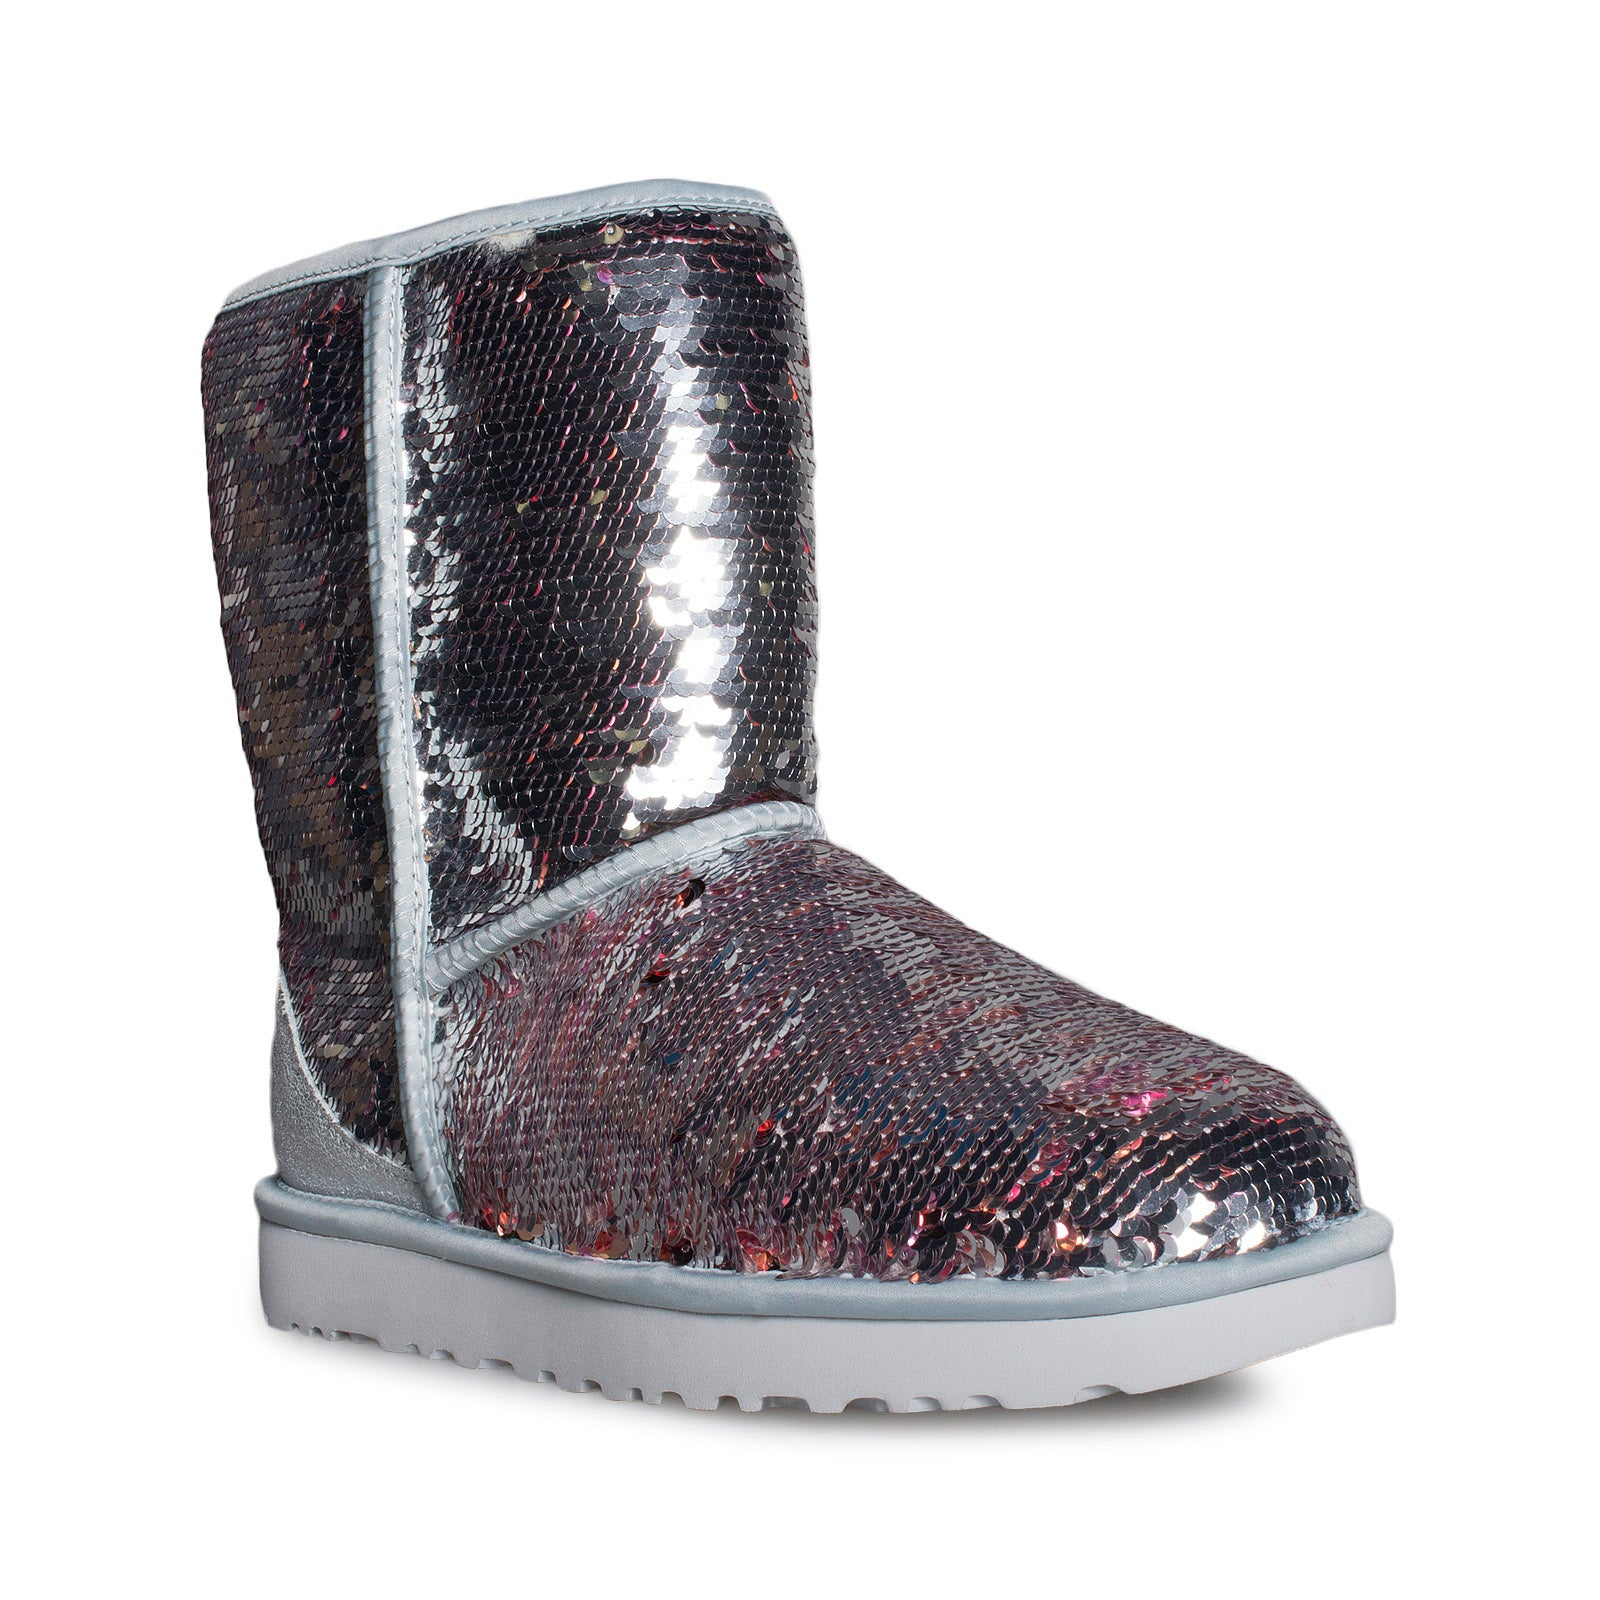 3e5133ef33f UGG Classic Short Sequin Silver Boots - Women's - MyCozyBoots